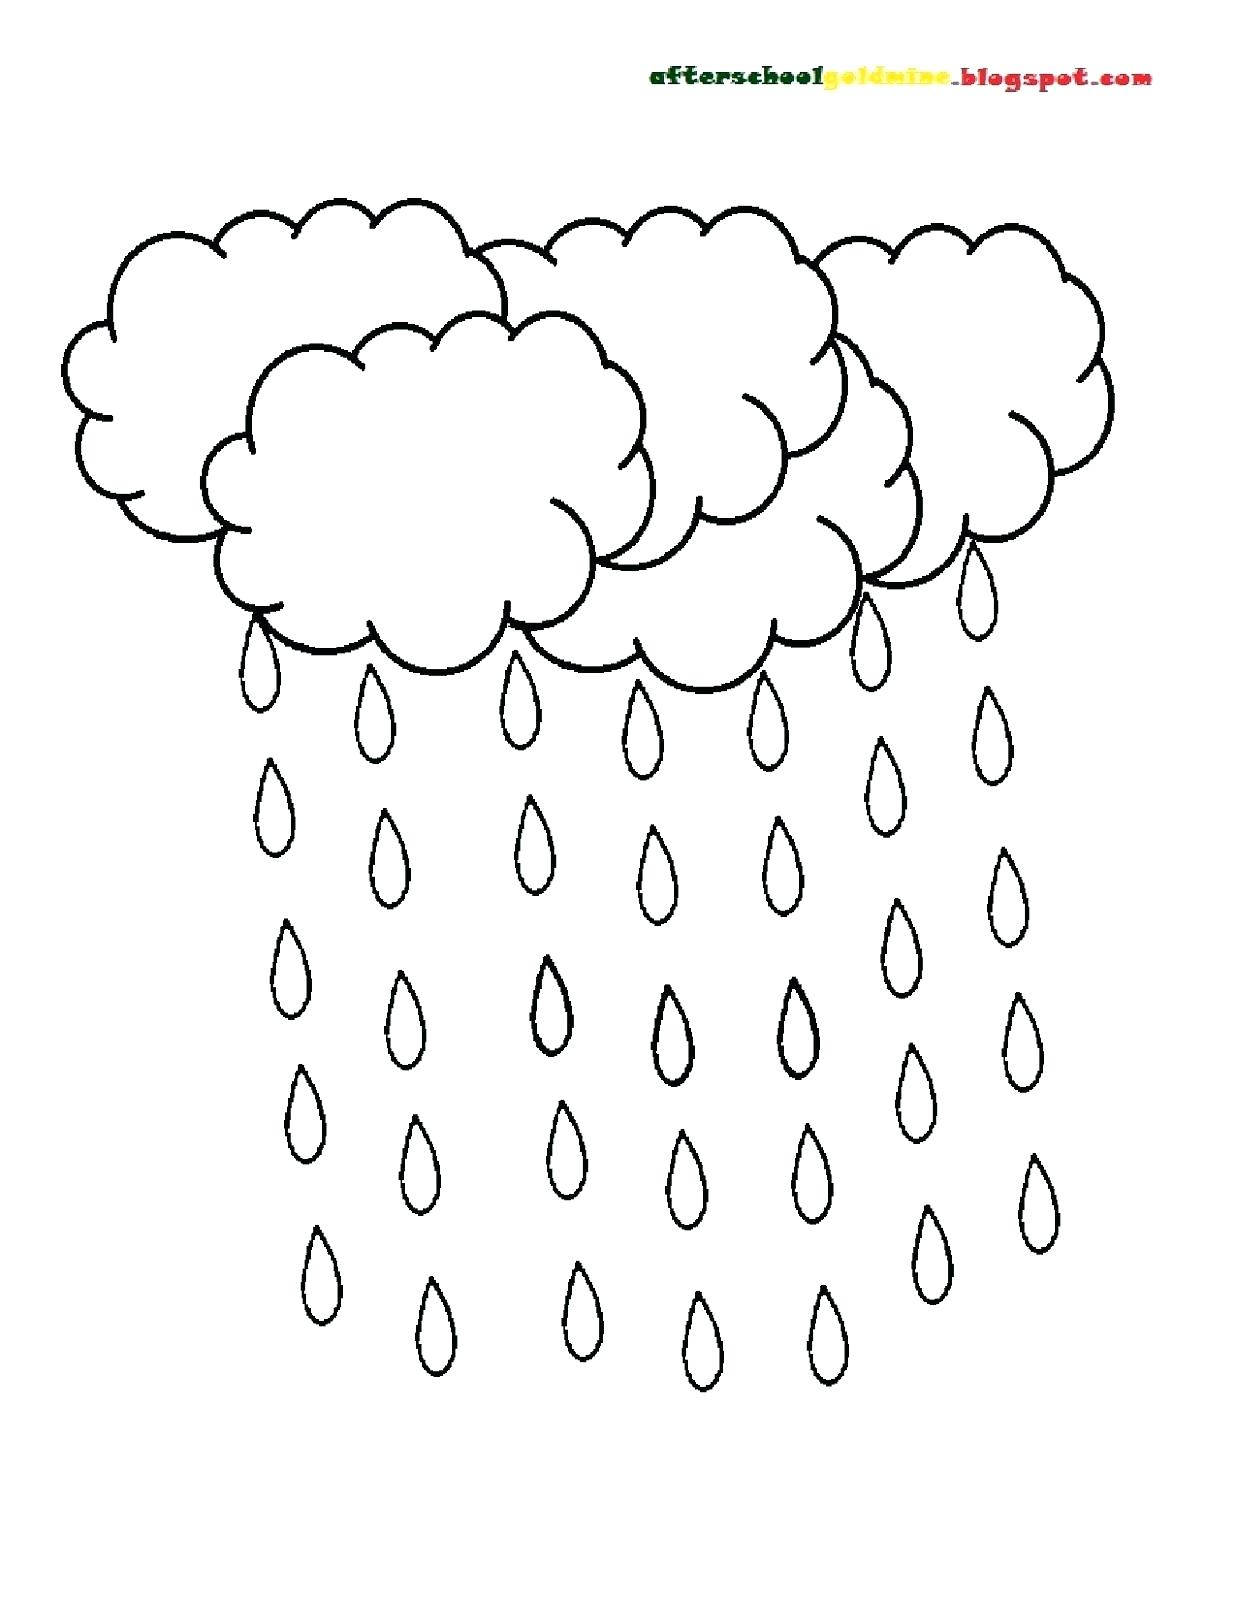 1236x1600 Coloring Pages ~ Rainy Day Coloring Pages Season Drawing Pictures